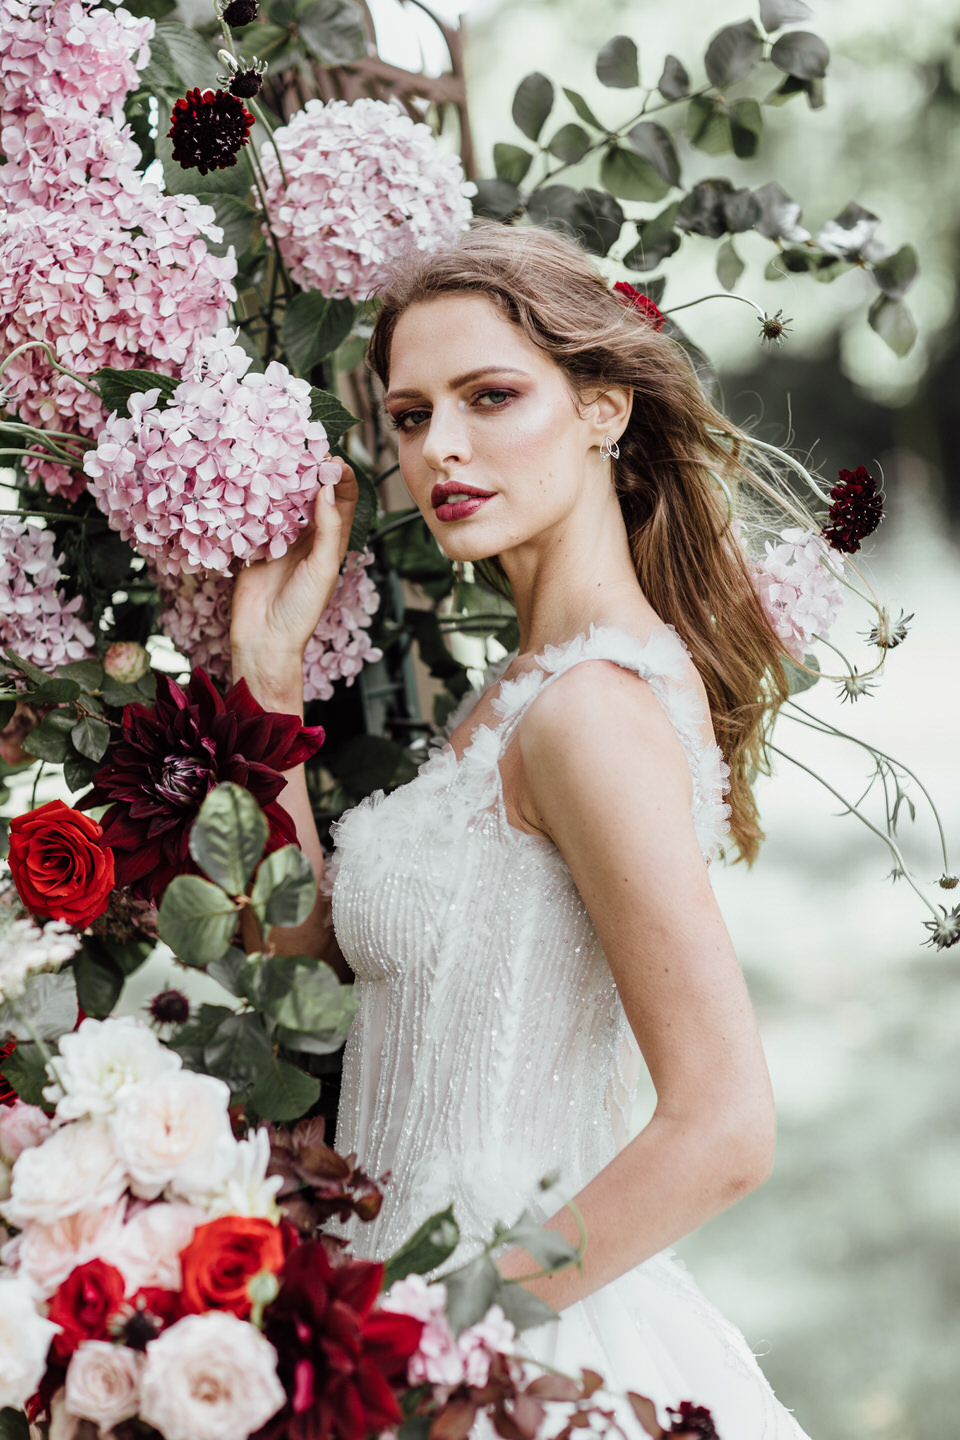 Garden bride standing next to floral arch made up of roses and hydrangeas